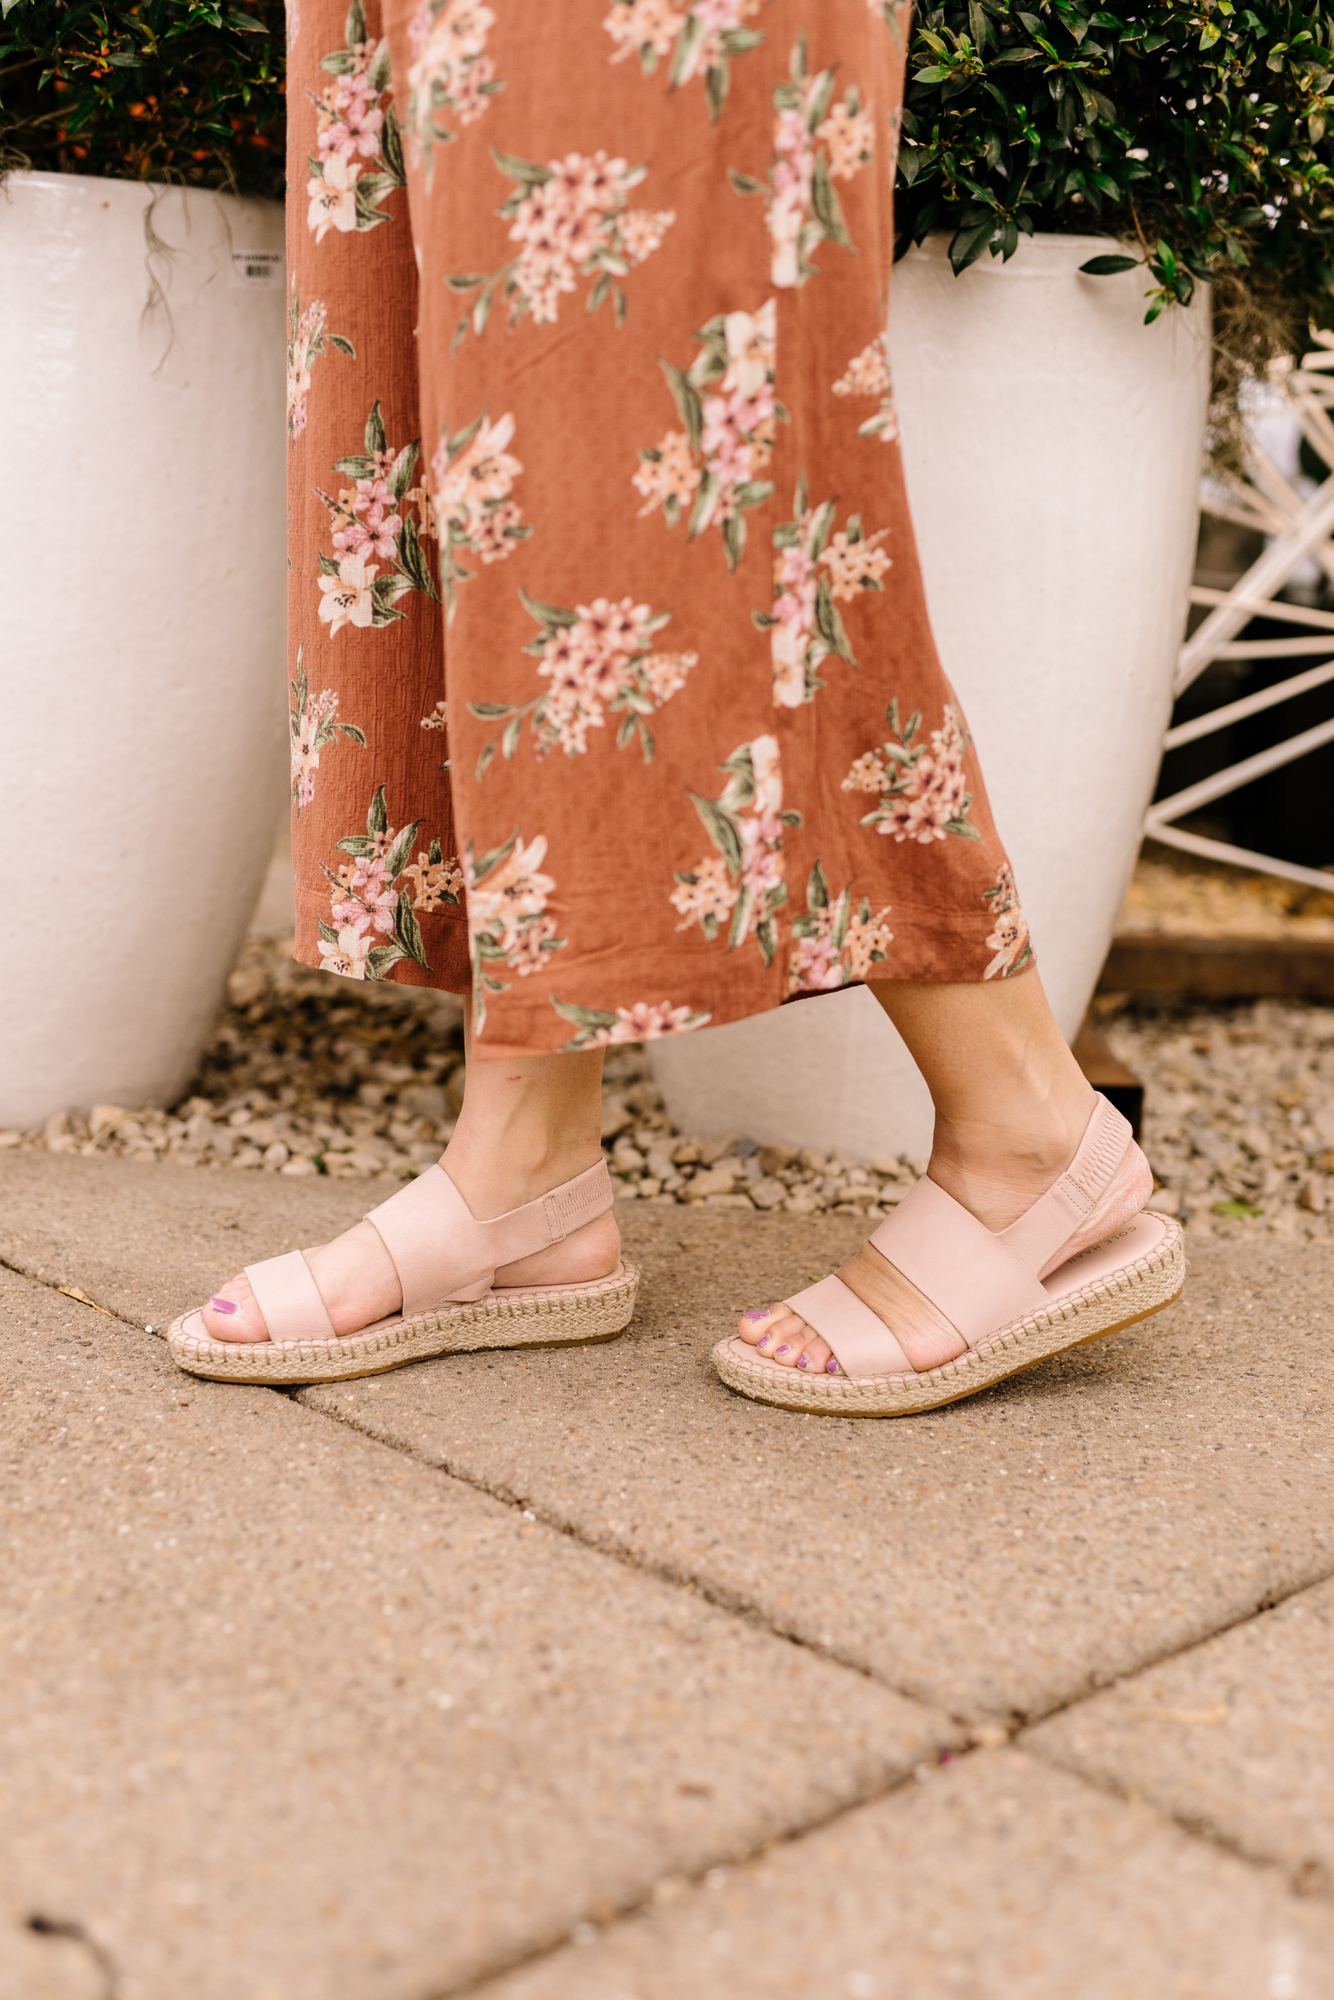 23acb3732d9d The Cole Haan Cloudfeel Espadrille Sandal comes in 4 colors. I went with  Mahogany Rose which is a really pretty blush pink. I m always a firm  believer that ...